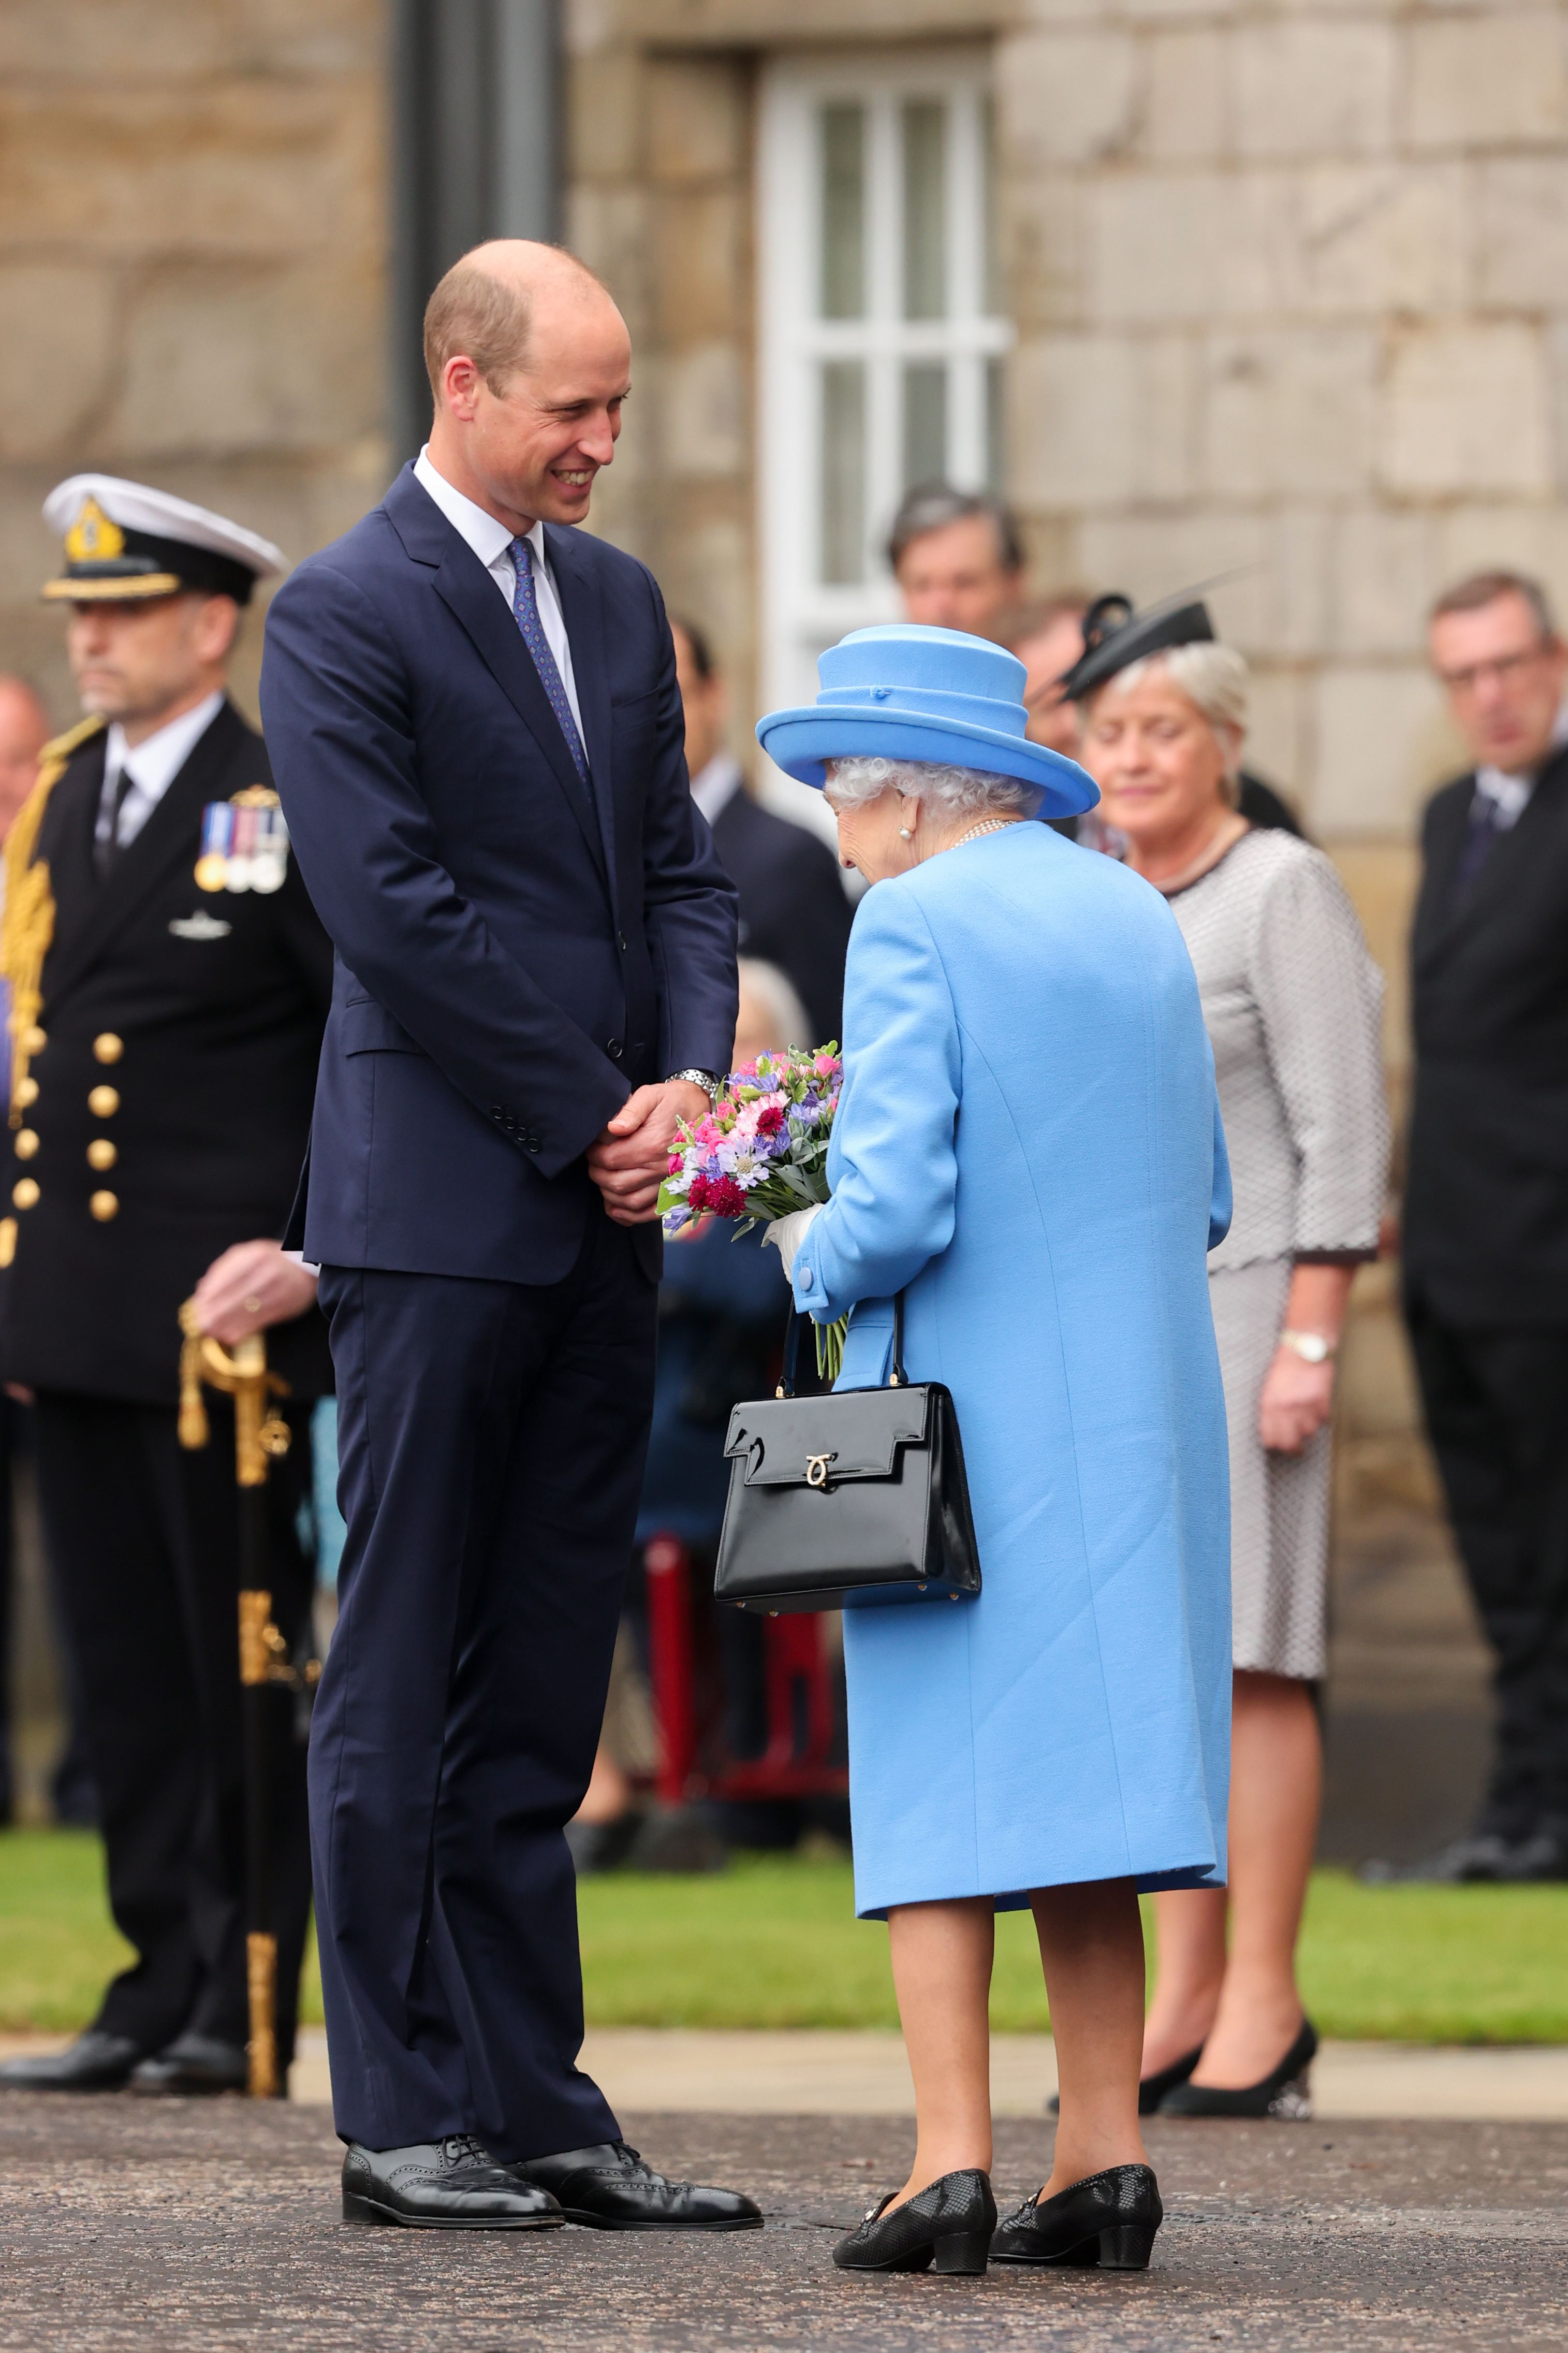 Prince Williamand Queen Elizabeth II atThe Palace Of Holyrood House on June 28, 2021, in Edinburgh, Scotland | Photo:Chris Jackson - WPA Pool/Getty Images